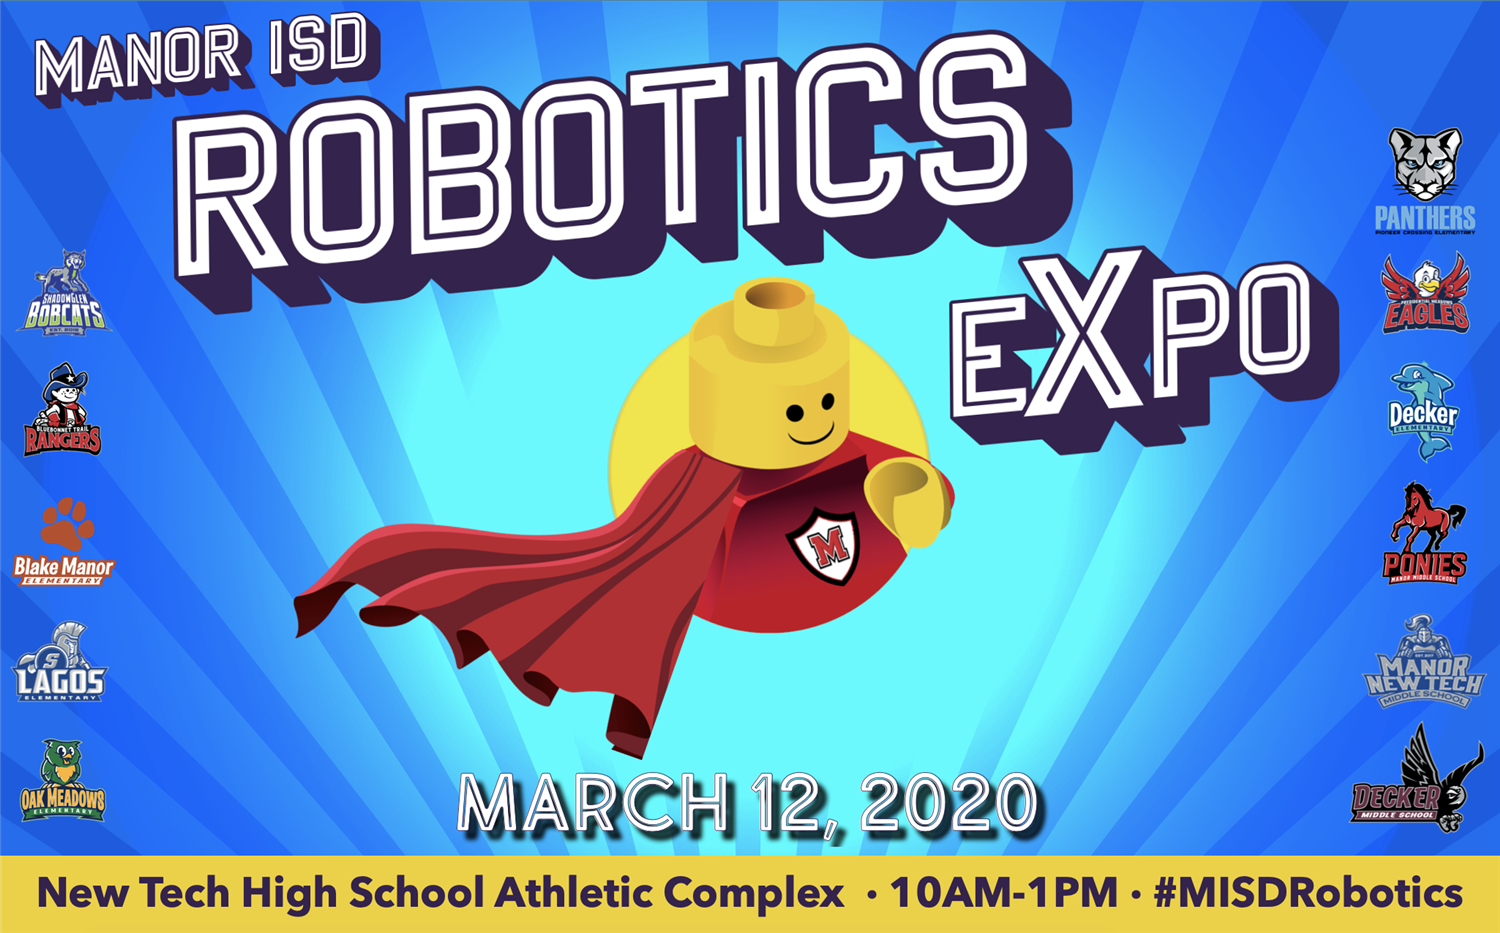 11th annual Manor ISD Elementary Robotics Expo!